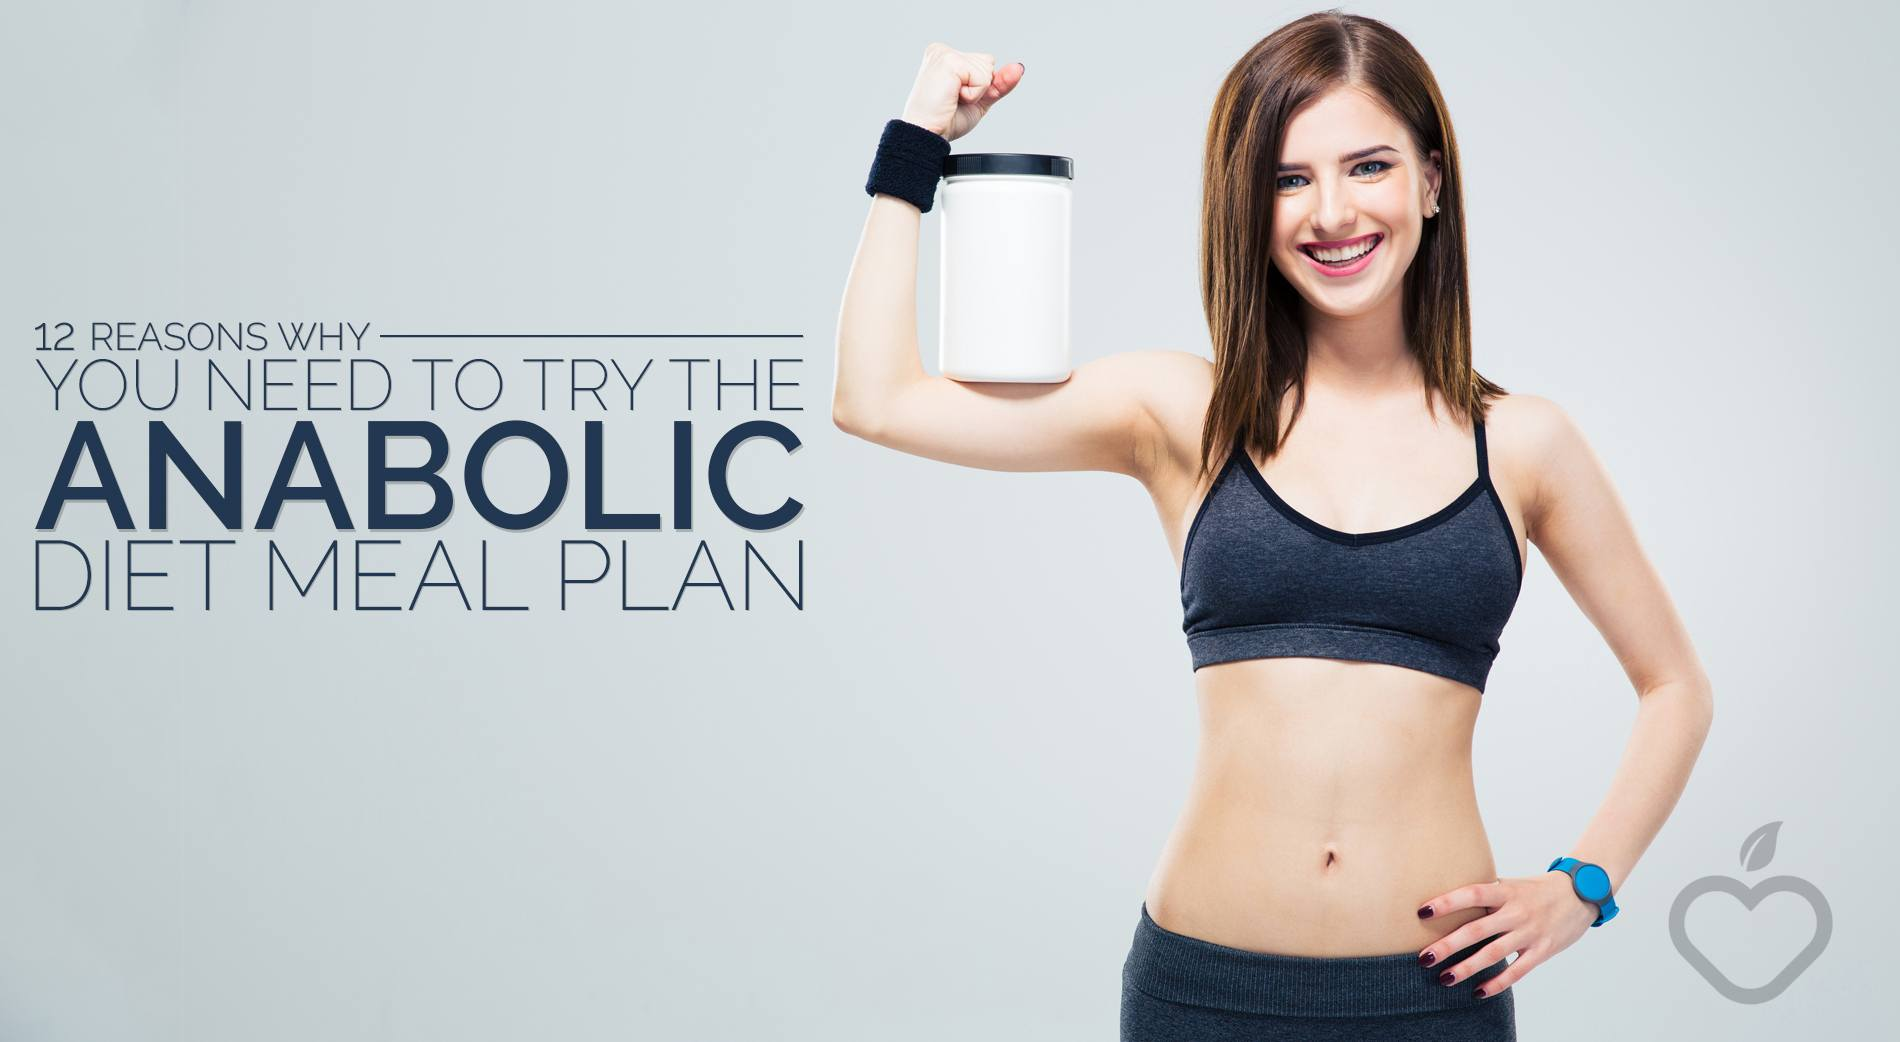 anabolic diet meal plan